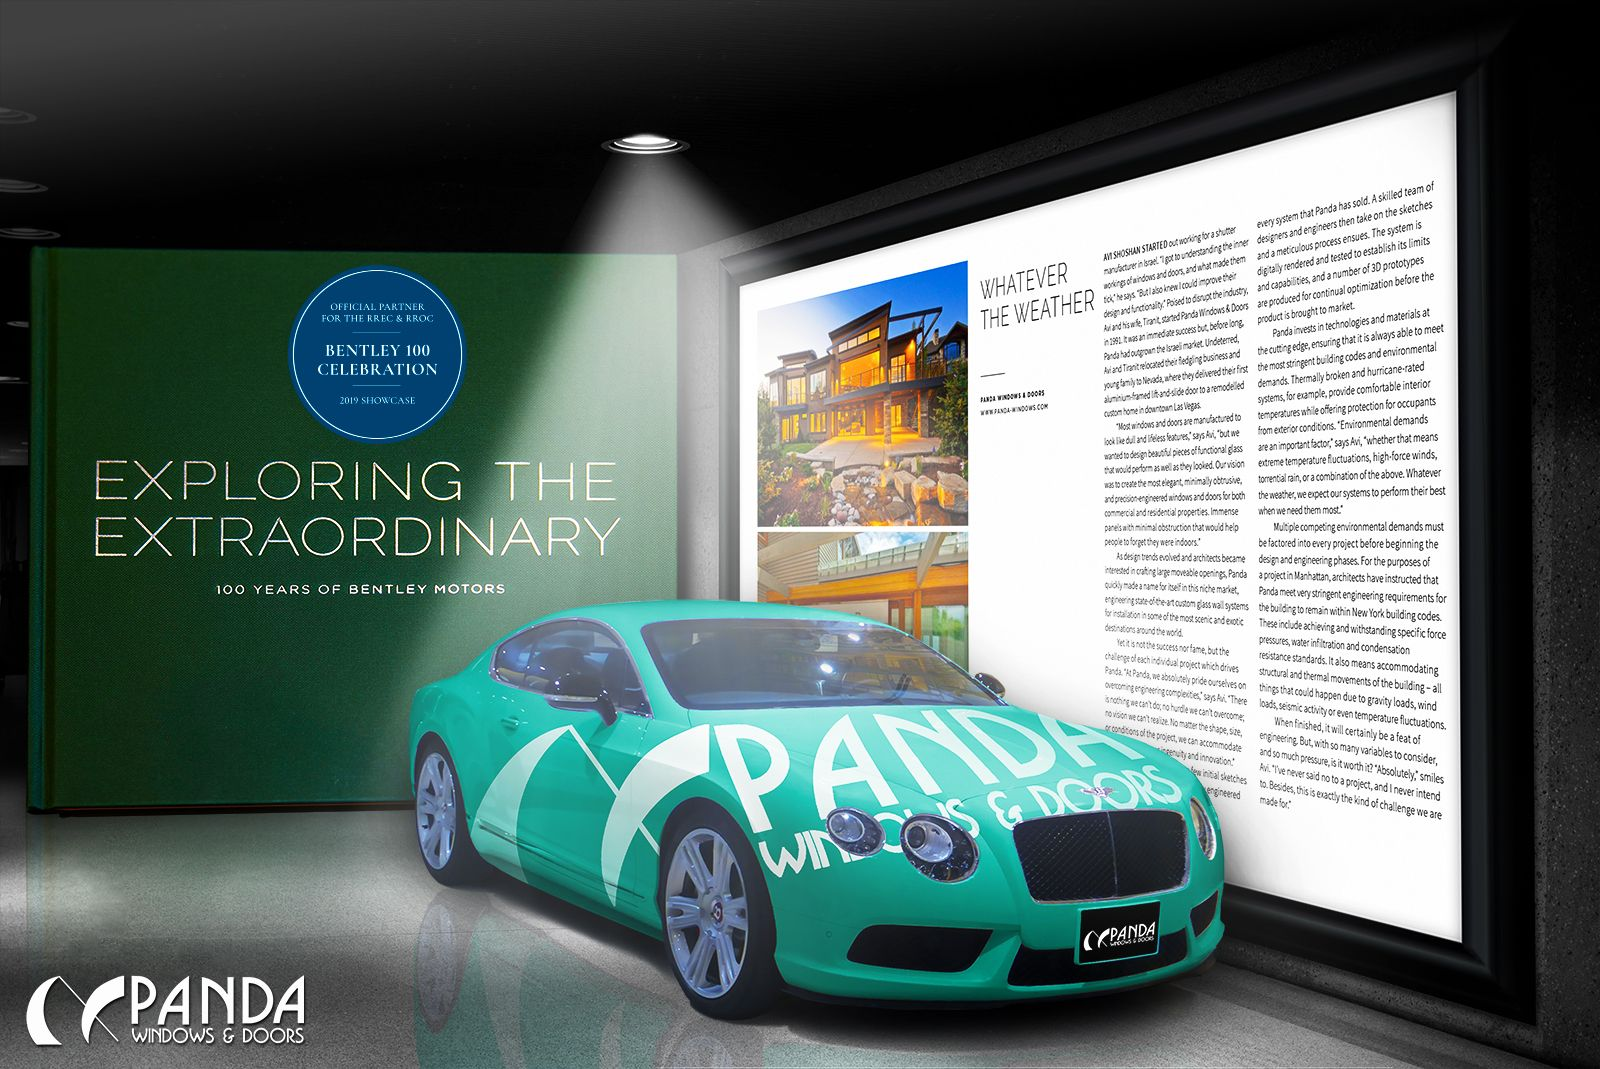 Panda Has Been Honored To Be Featured In The Bentley